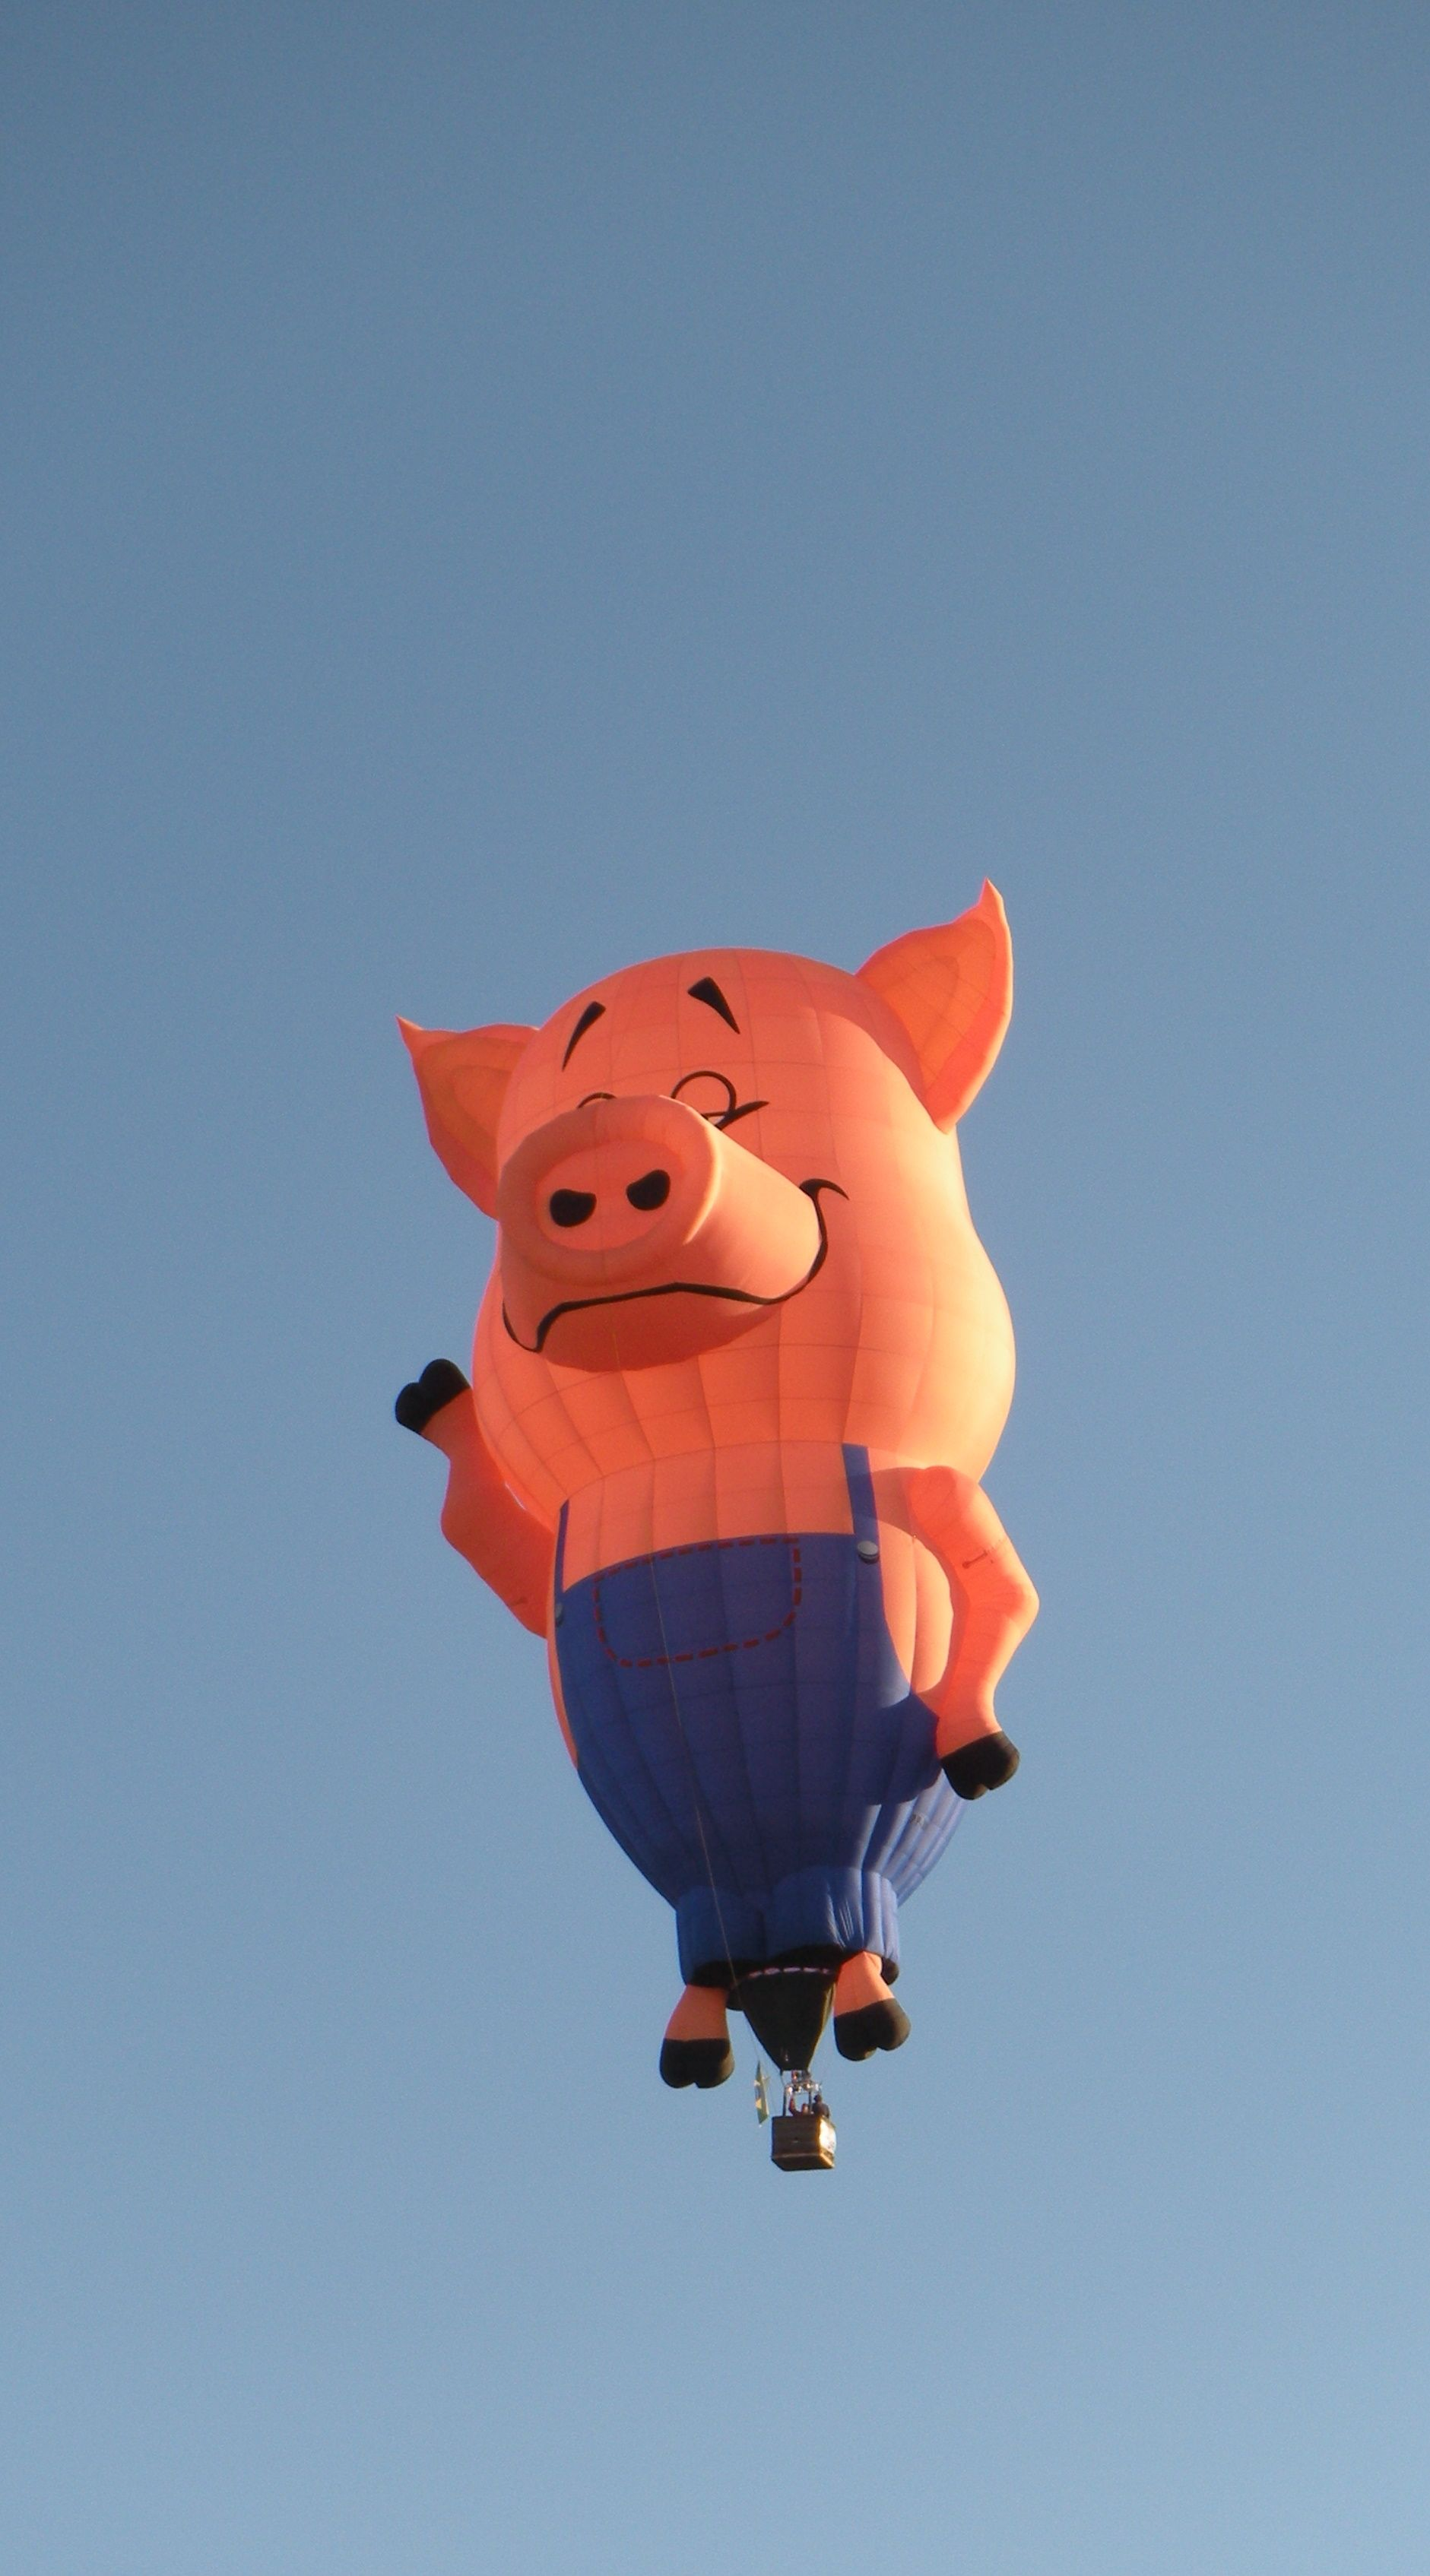 Farmer Pig Albuquerque Int L Balloon Fiesta 2010 Hot Air